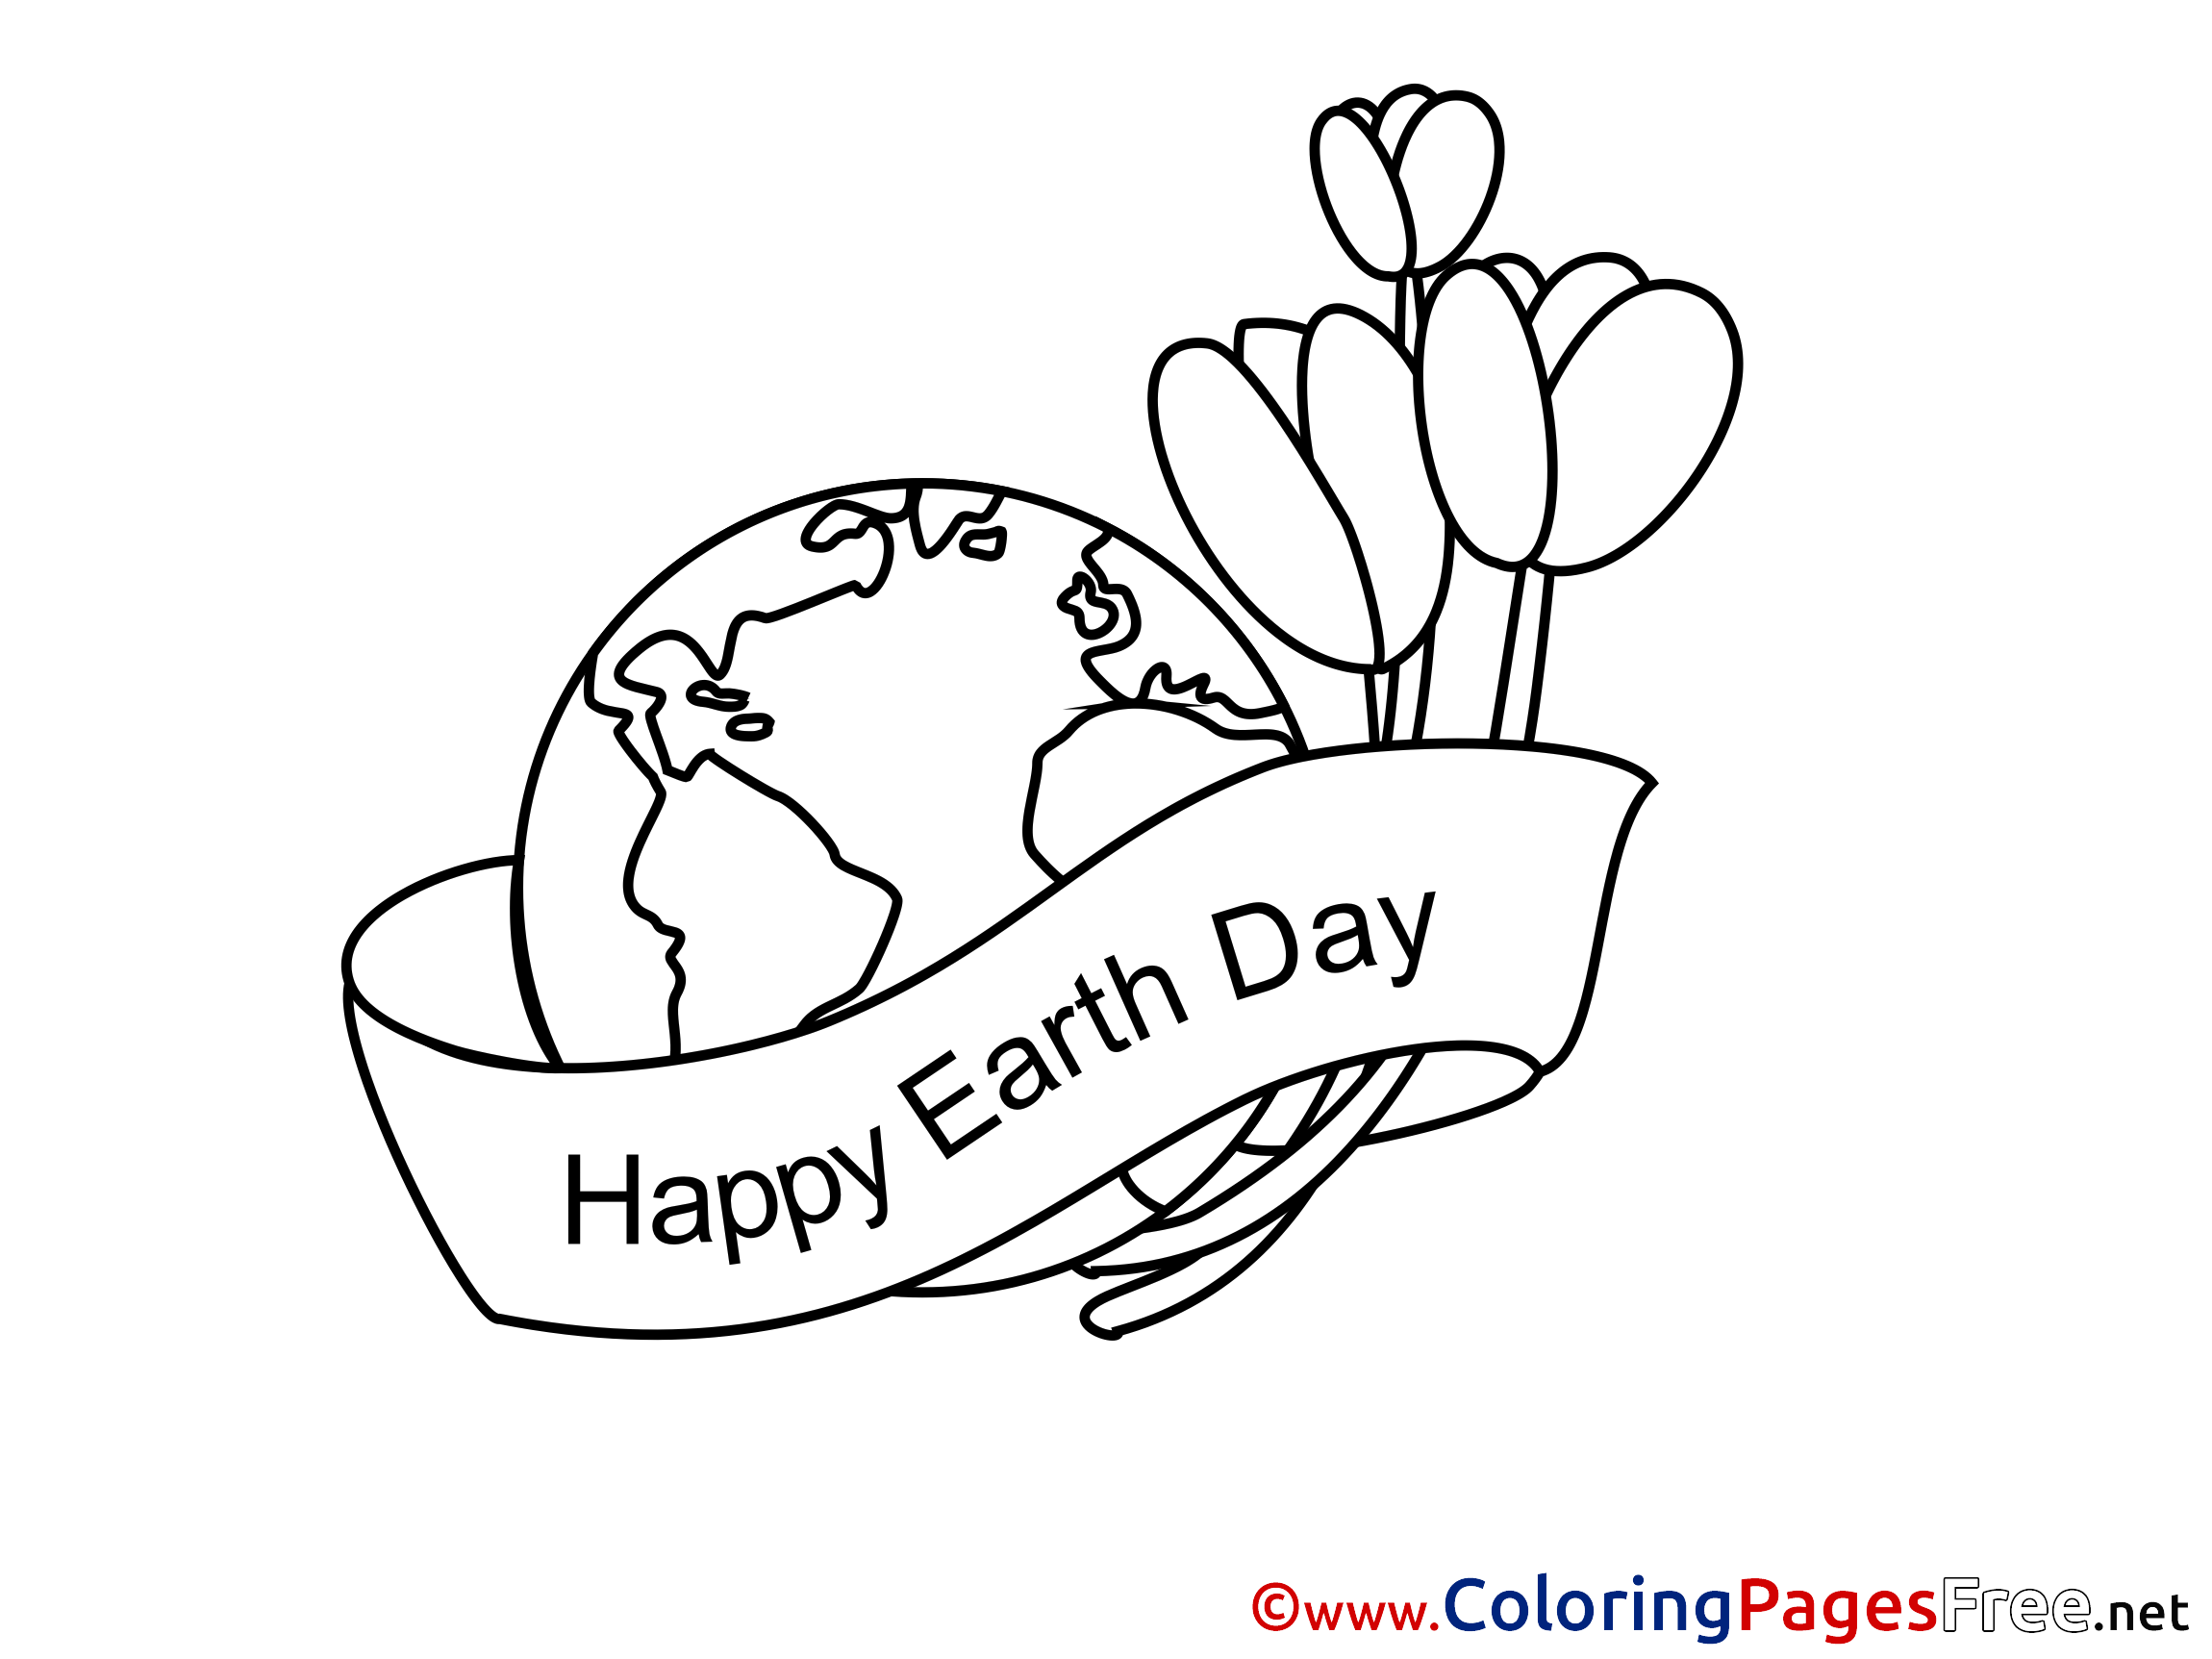 - Tulips Happy Earth Day Colouring Page Printable Free